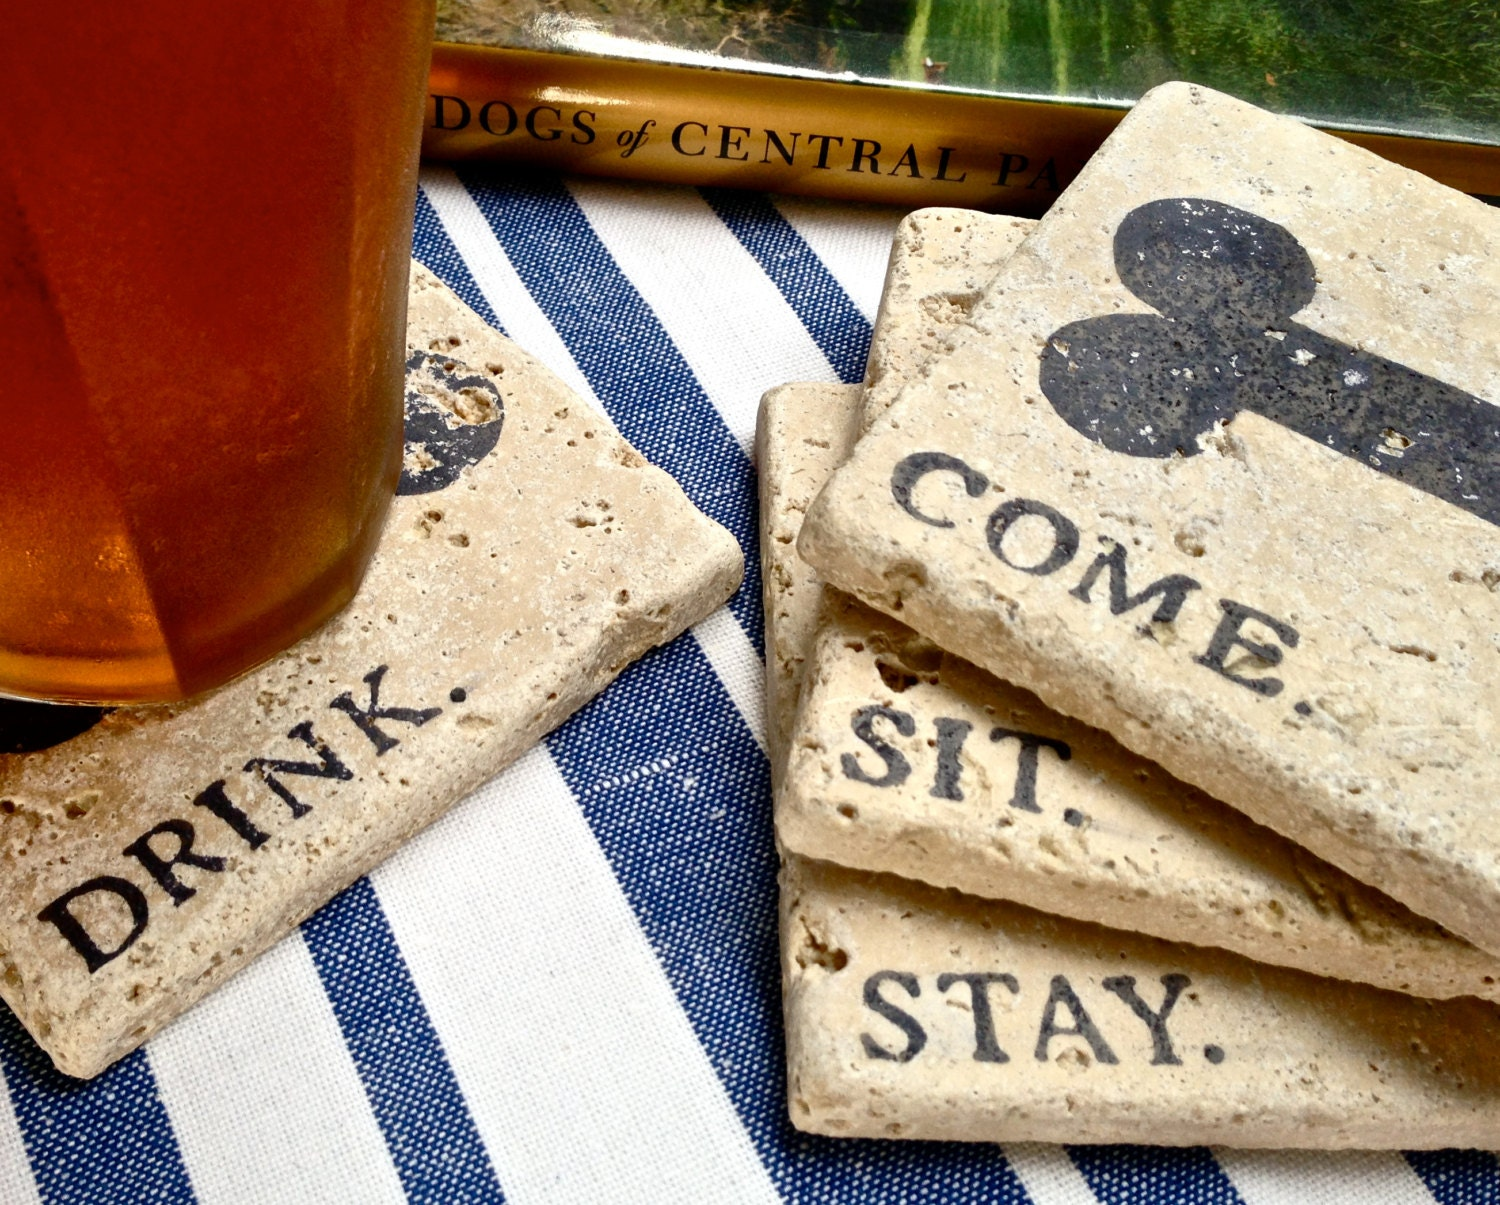 Come Sit Stay Drink Natural Stone Coaster Collection 4